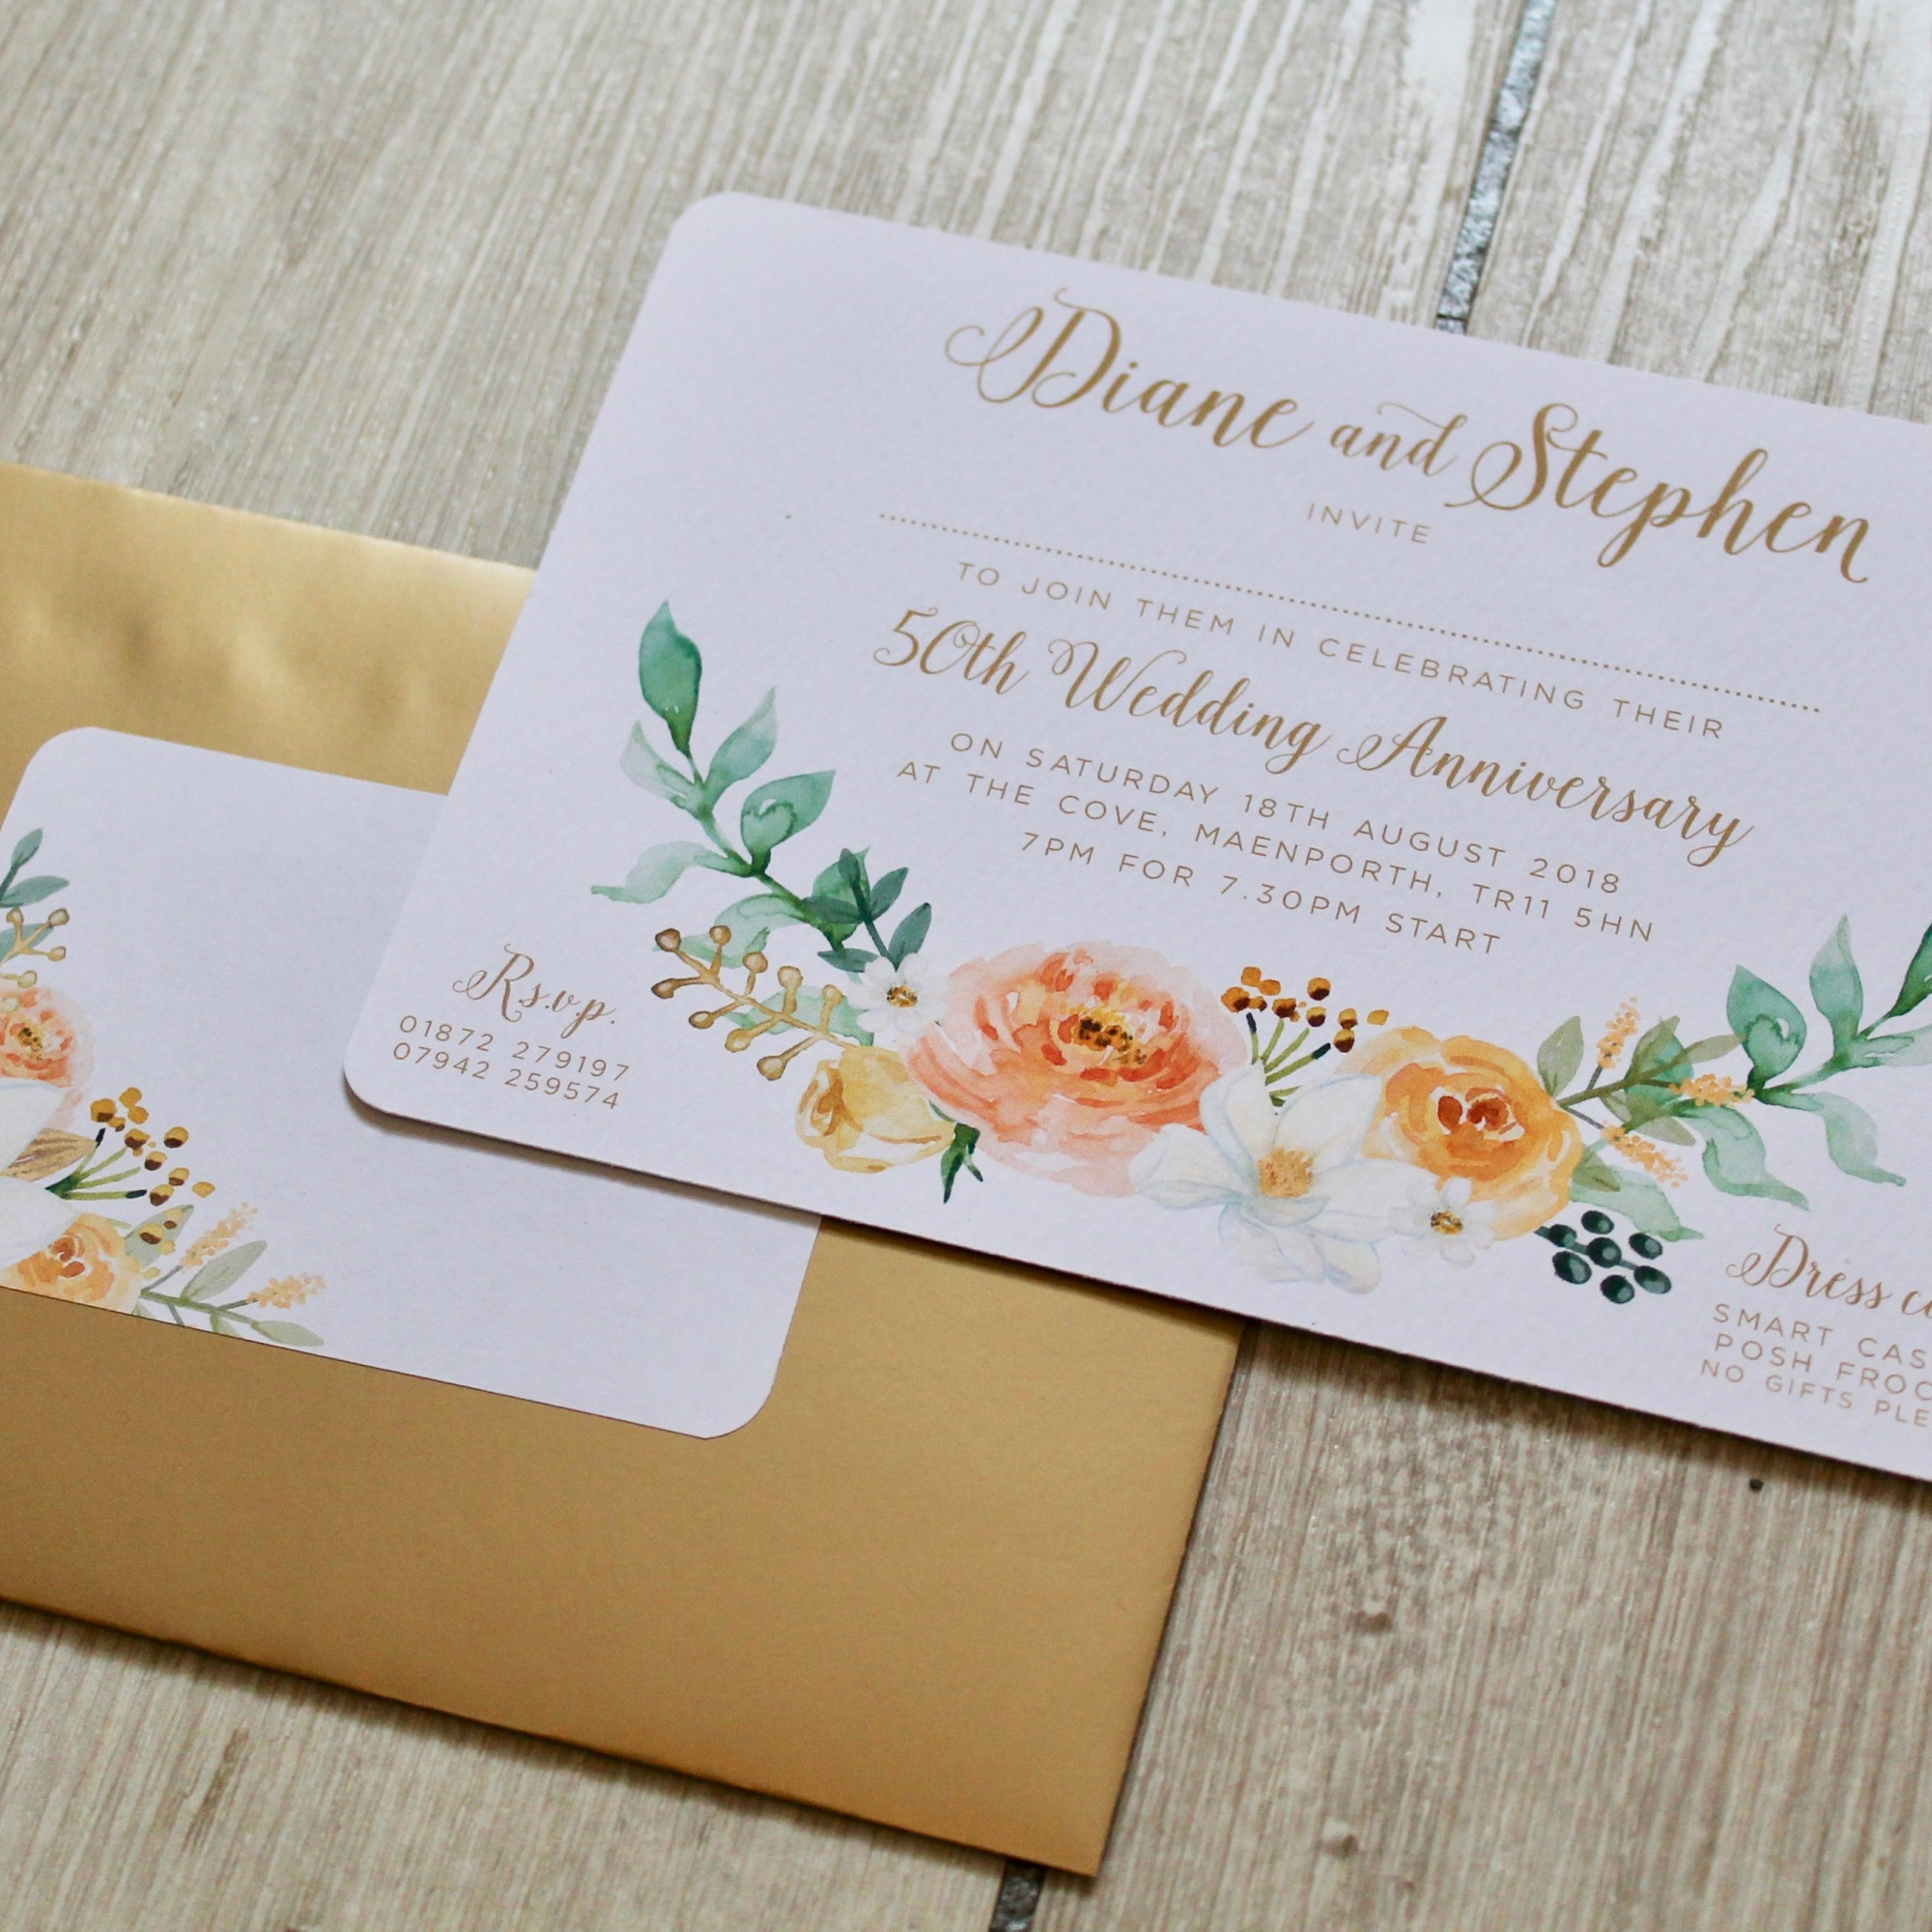 golden, wedding, anniversary, floral, flowers, invite, invitation, stationery, stationary, quality, unusual, watercolour, metallic, Laura likes